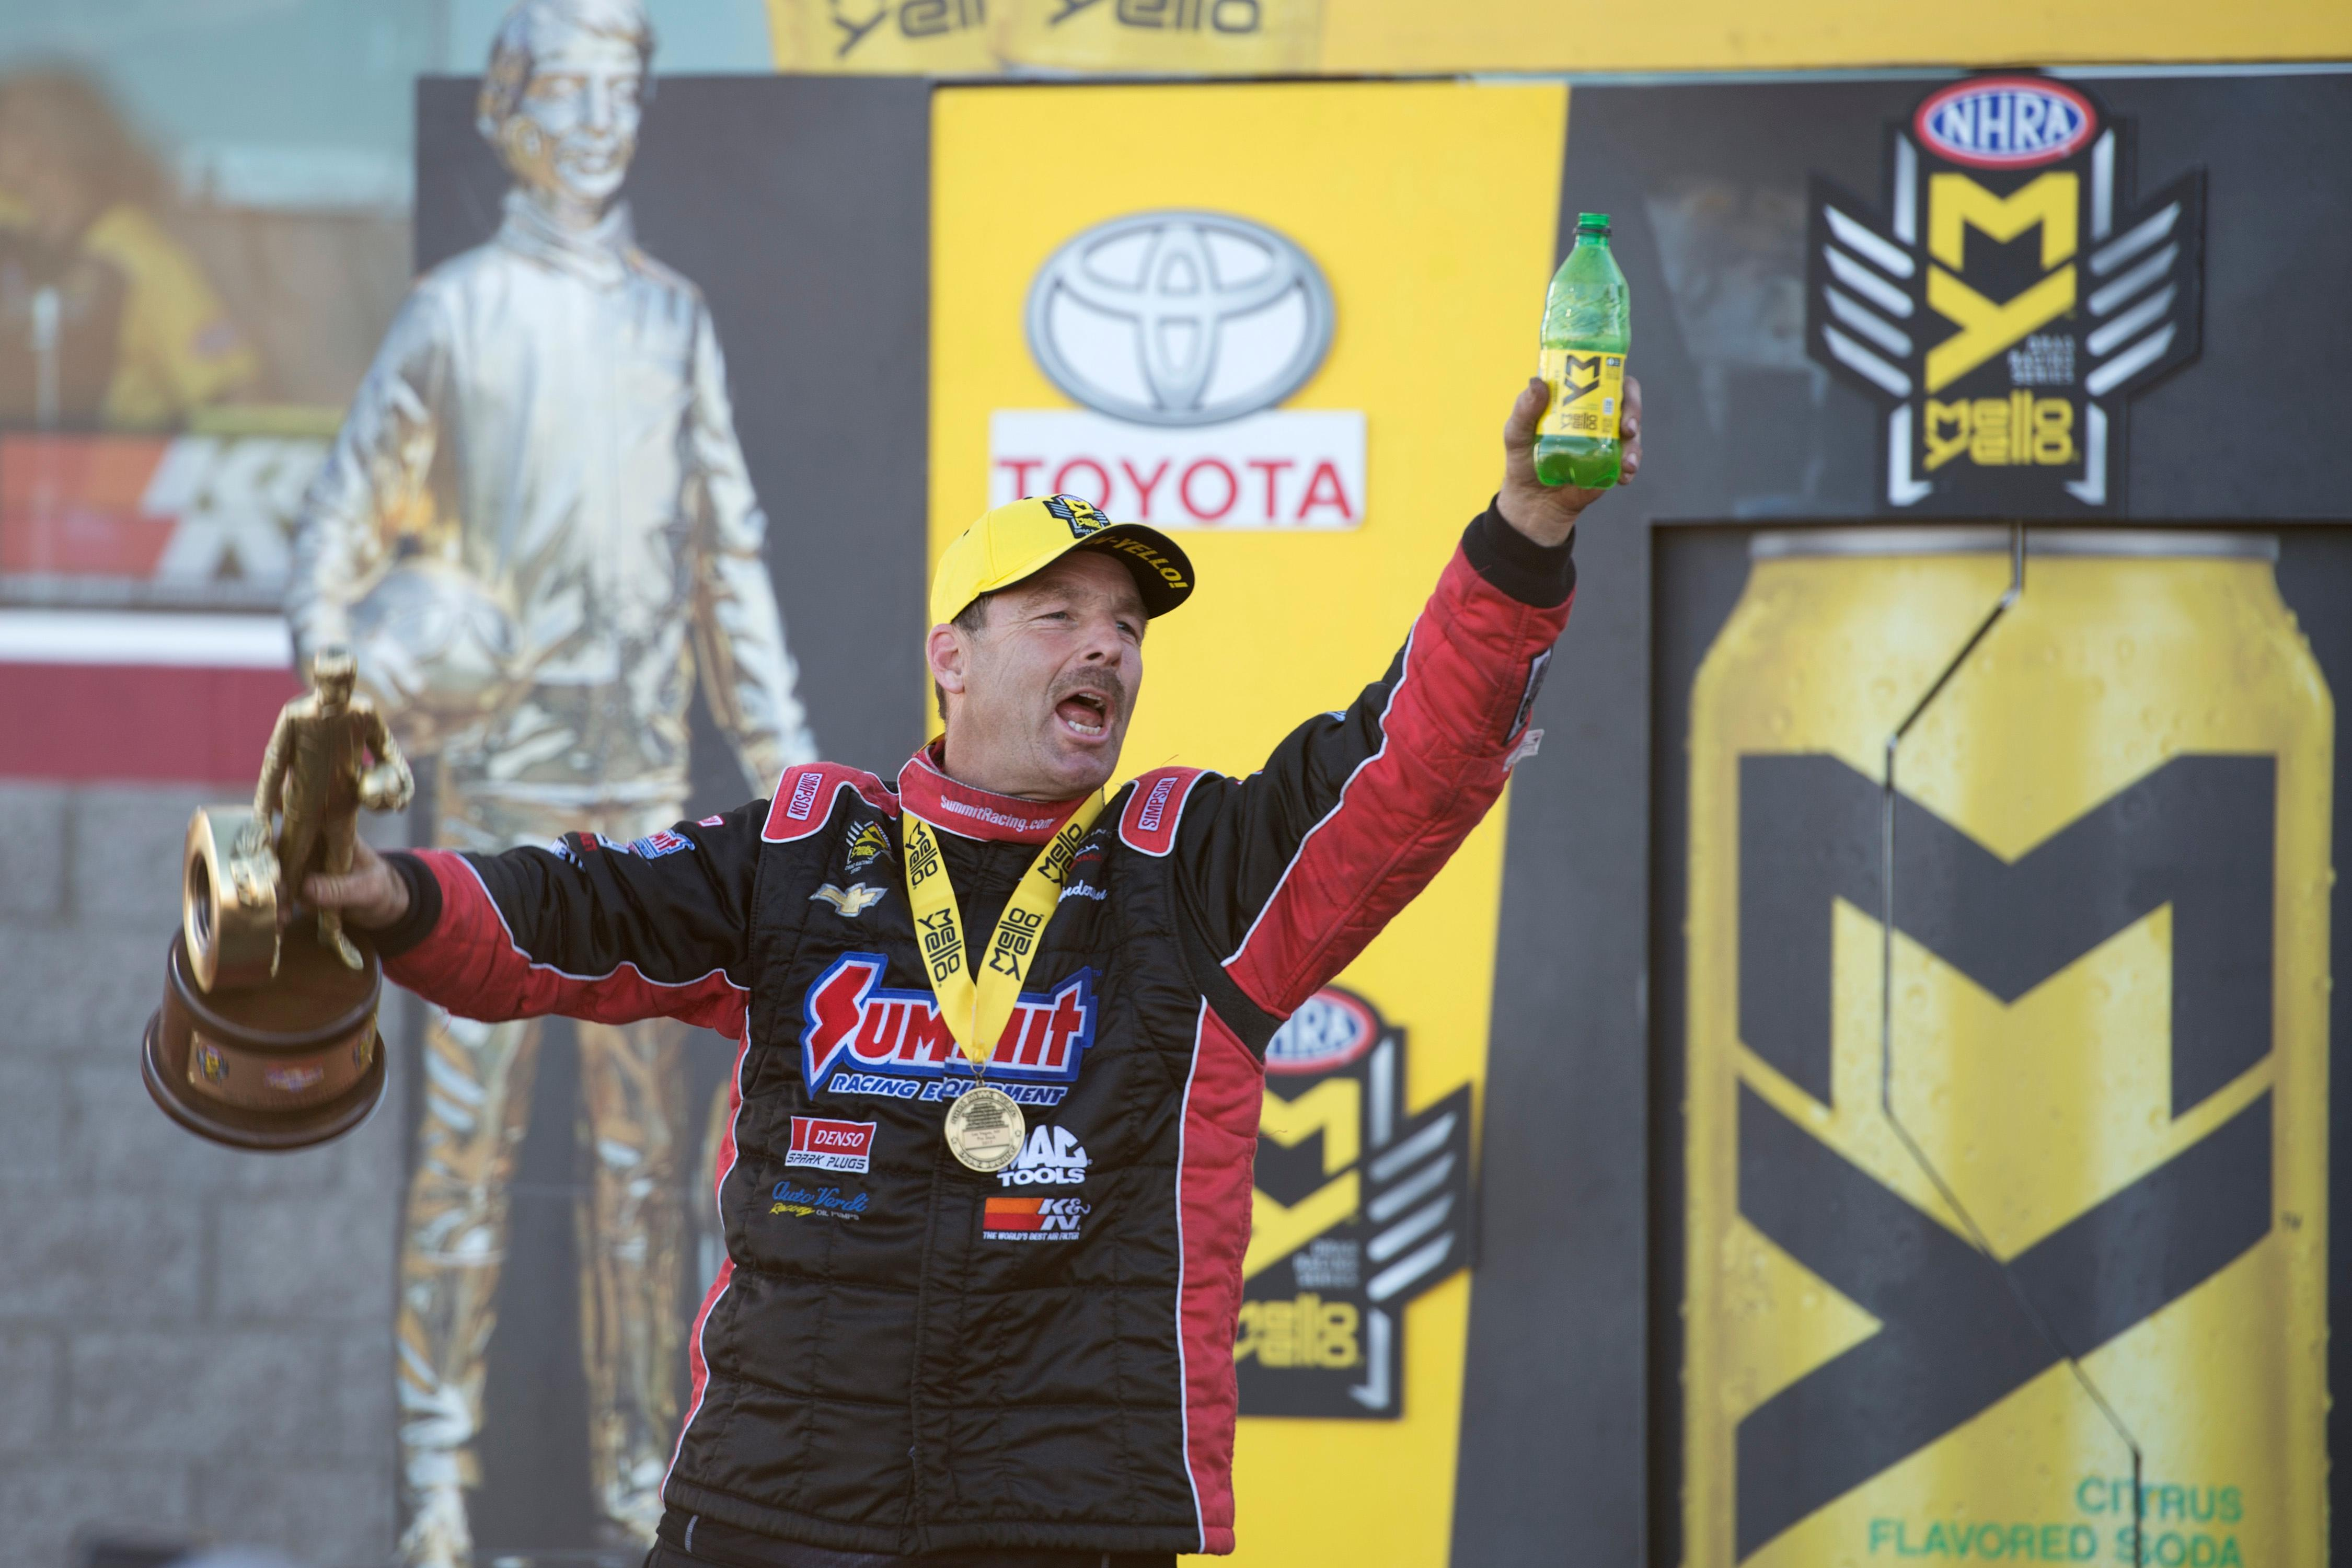 Pro Stock driver Greg Anderson celebrates his victory at the NHRA Toyota Nationals Sunday, October 29, 2017, at The Strip at the Las Vegas Motor Speedway. CREDIT: Sam Morris/Las Vegas News Bureau